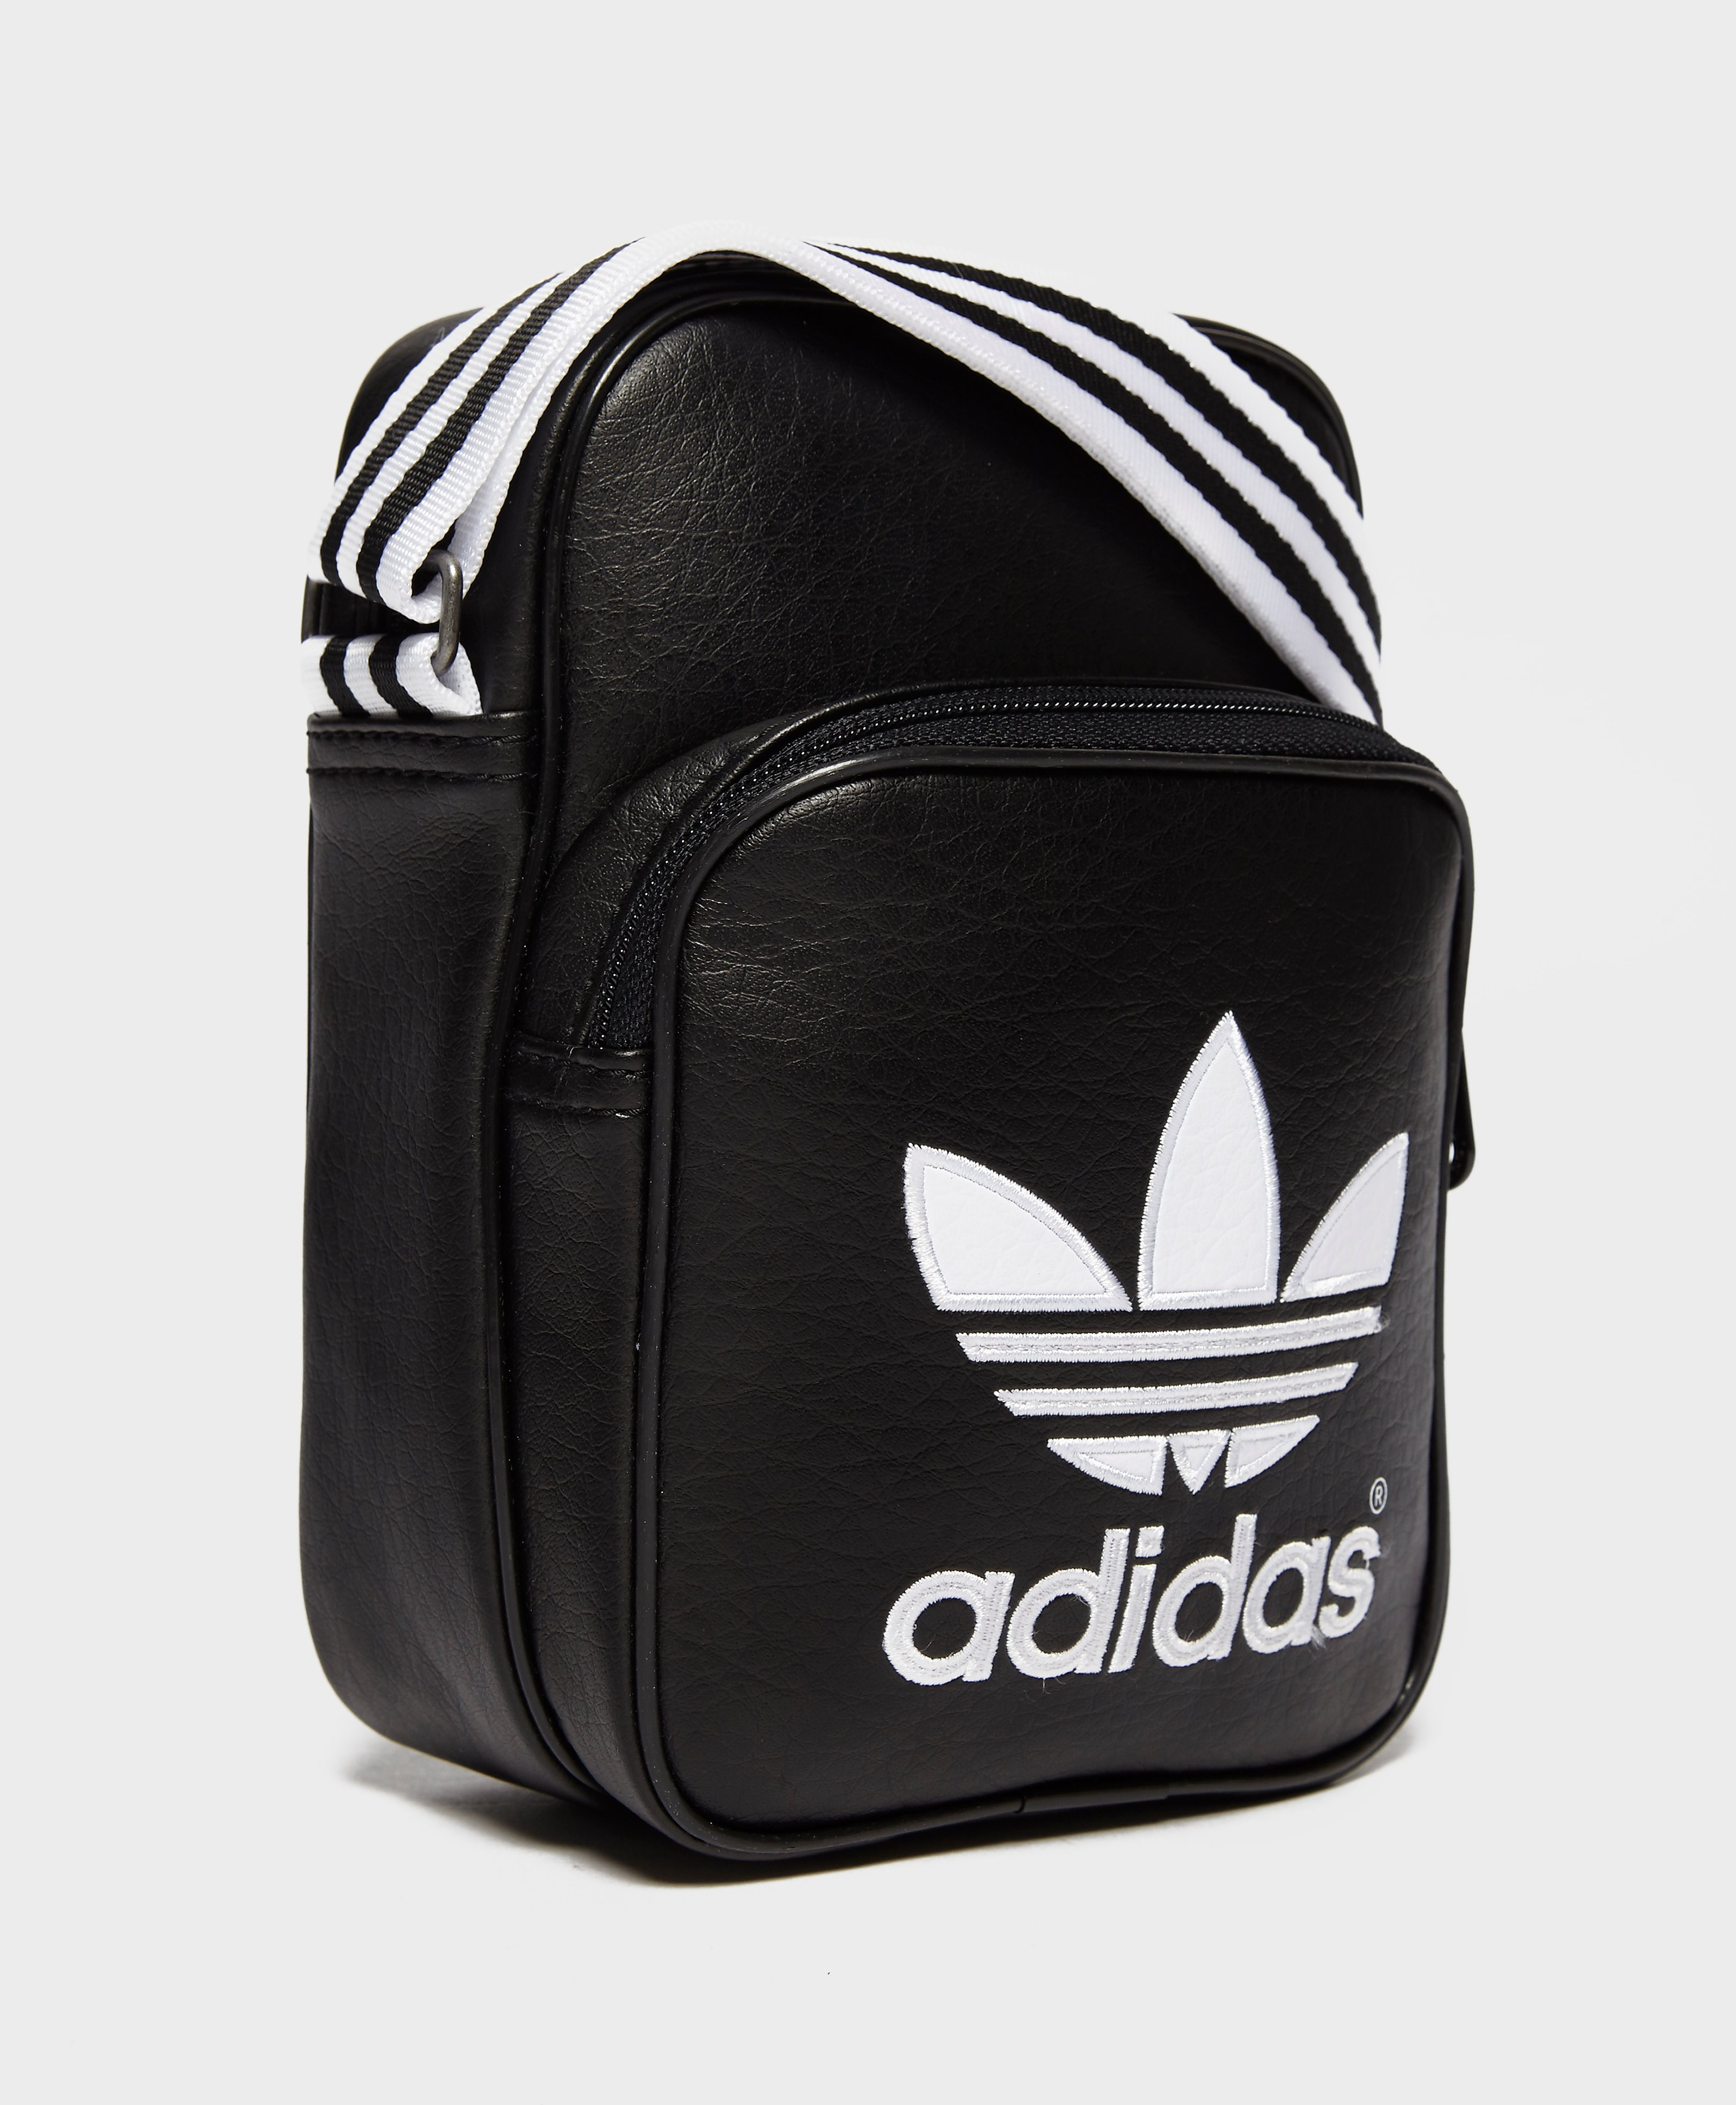 adidas Originals Small Items Bag